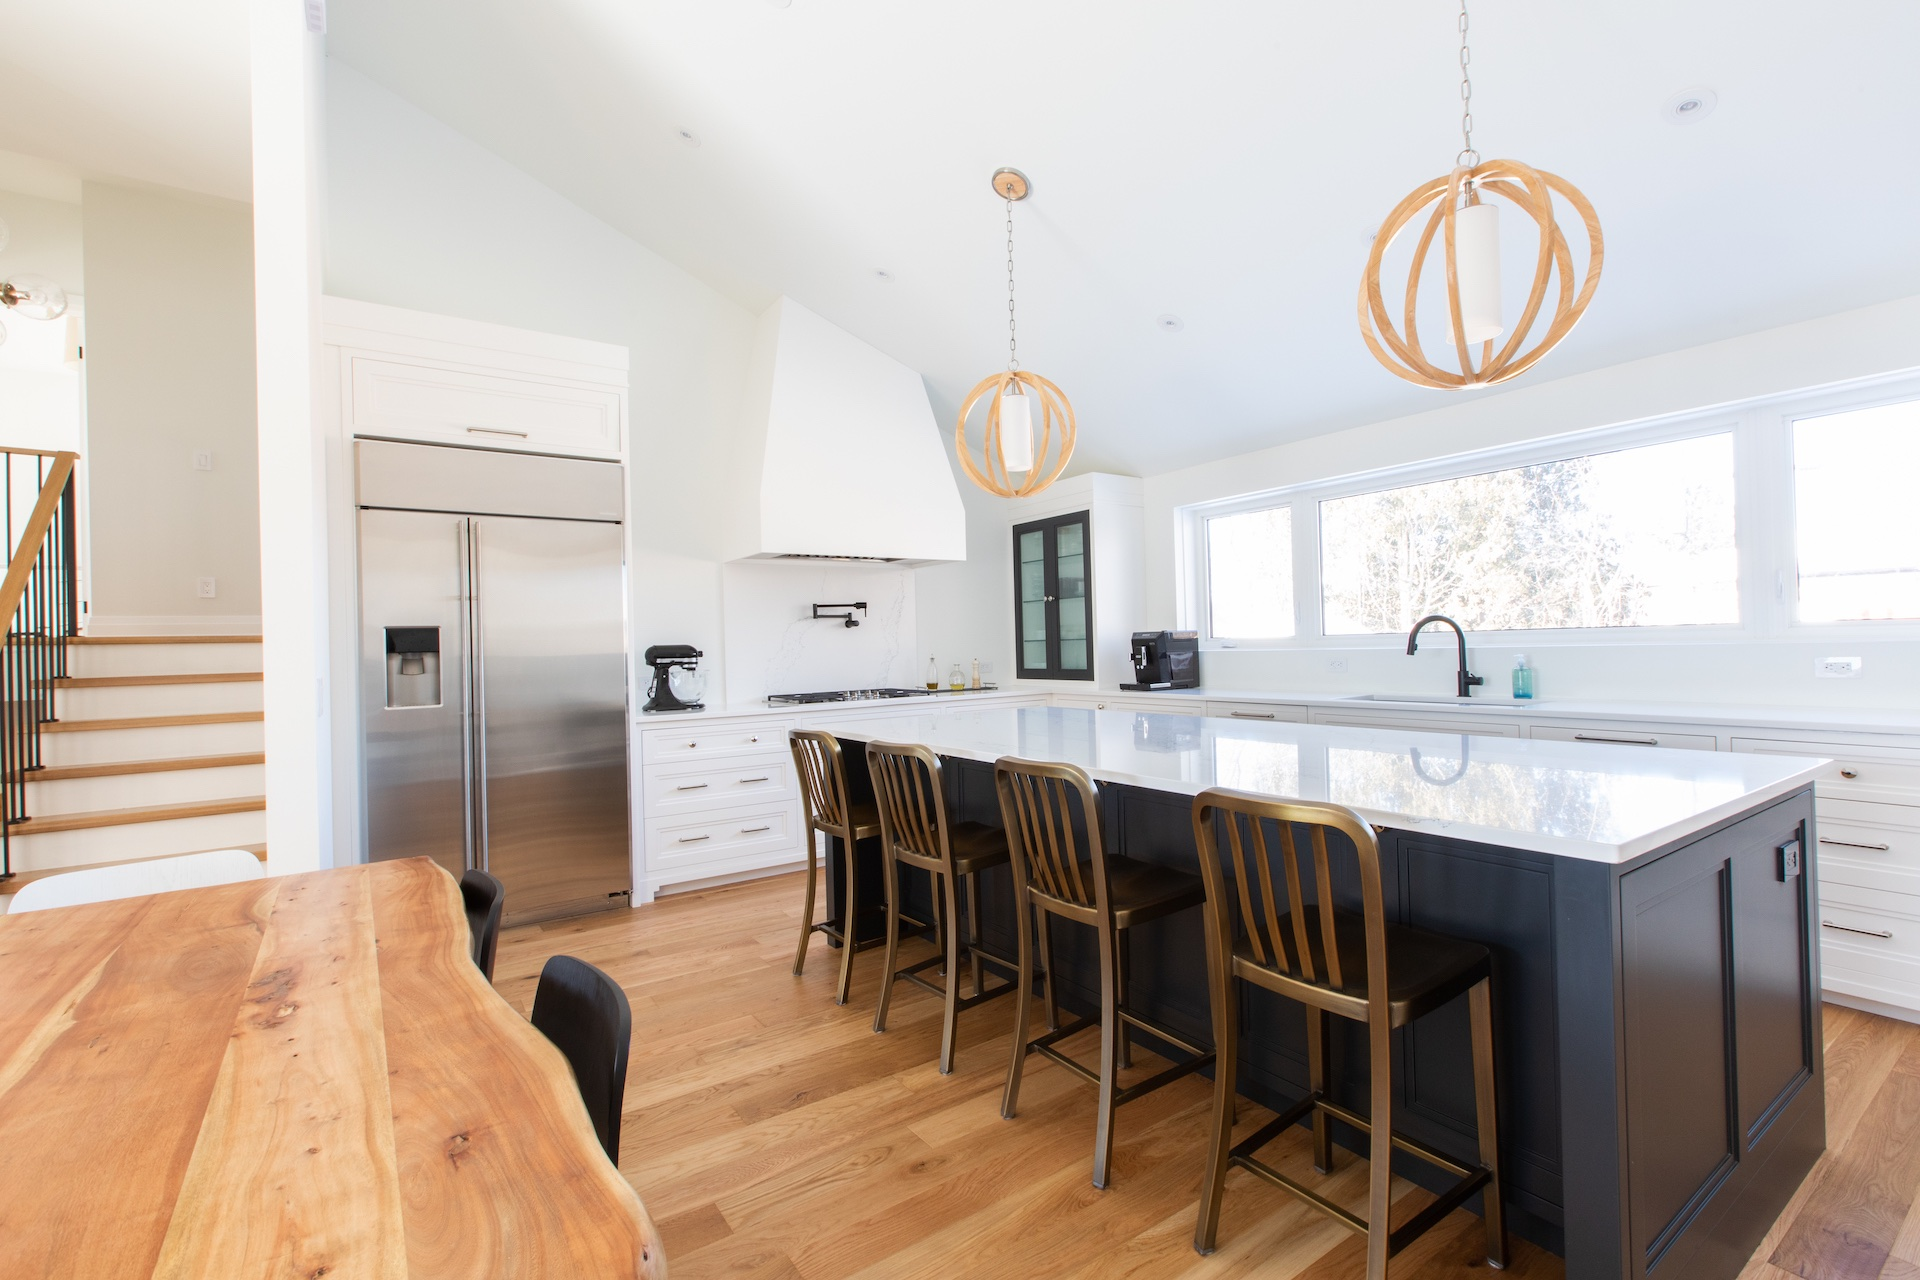 Kitchen with blue island, gold chairs and wood floor